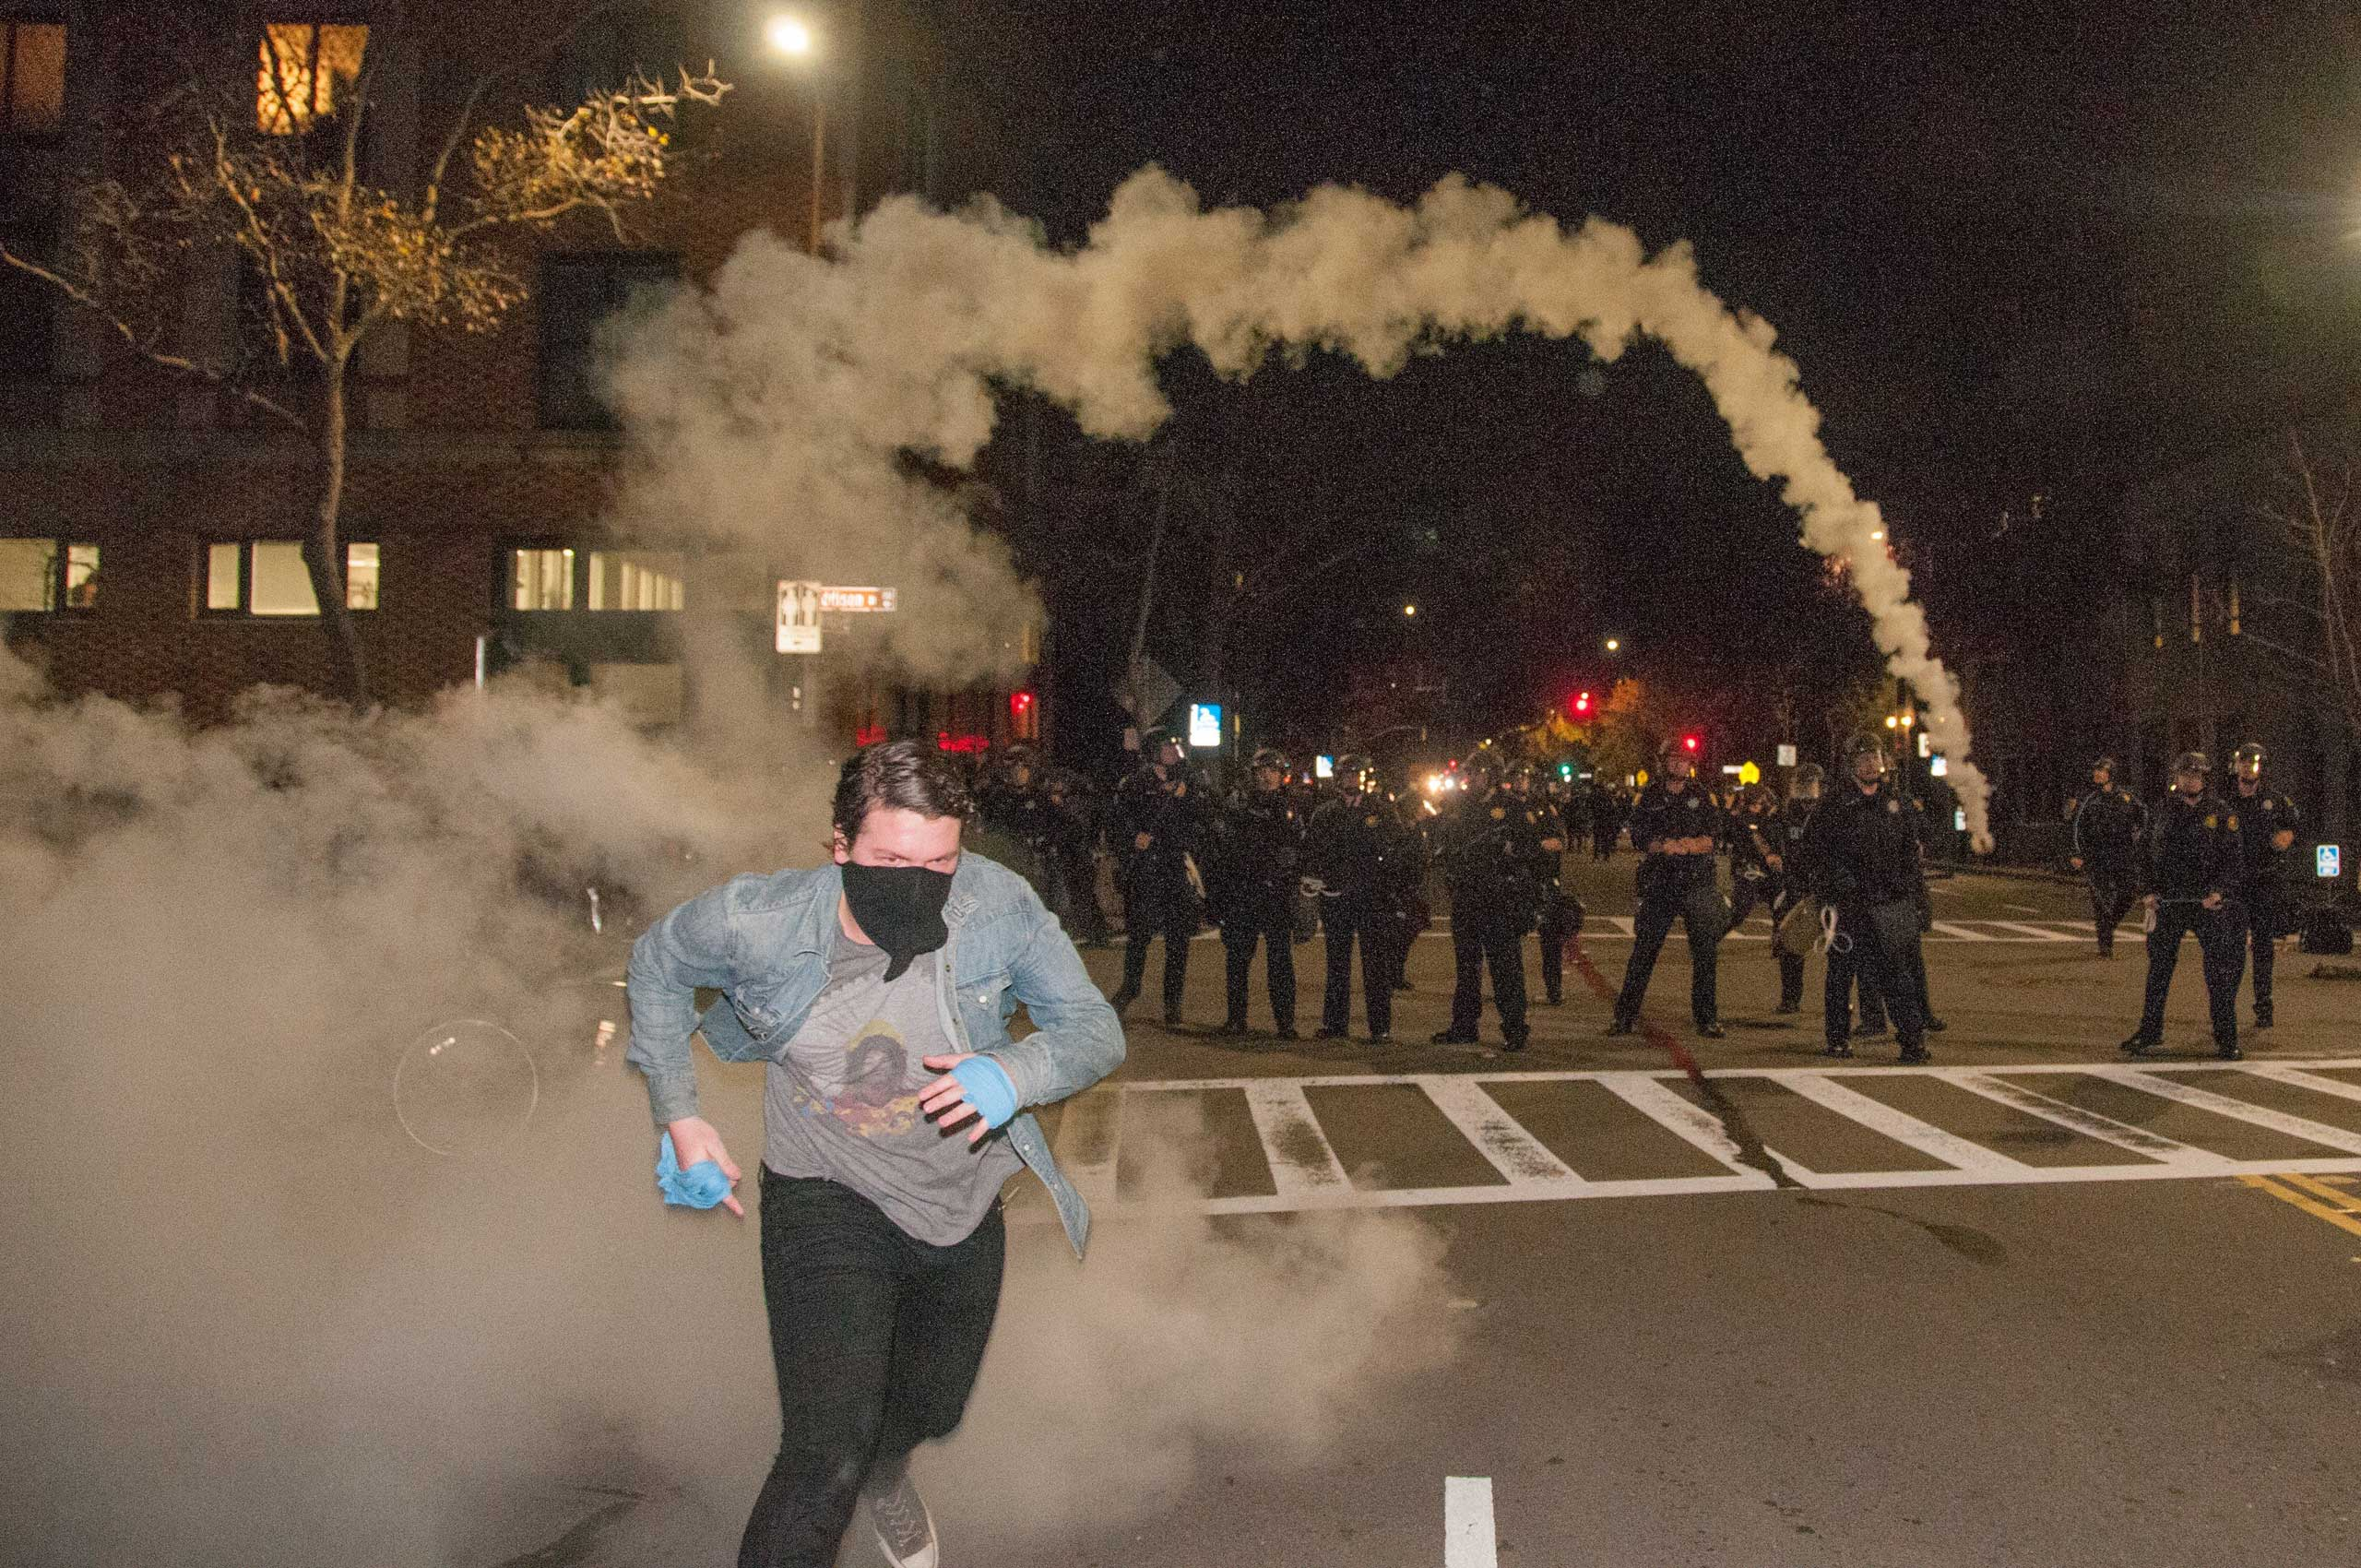 A protester runs after hurling back a smoke bomb, initially launched by police at demonstrators rallying against grand juries' decisions not to indict the police officers accused of killing Eric Garner and Michael Brown, Berkeley, Calif. on Dec. 6, 2014.